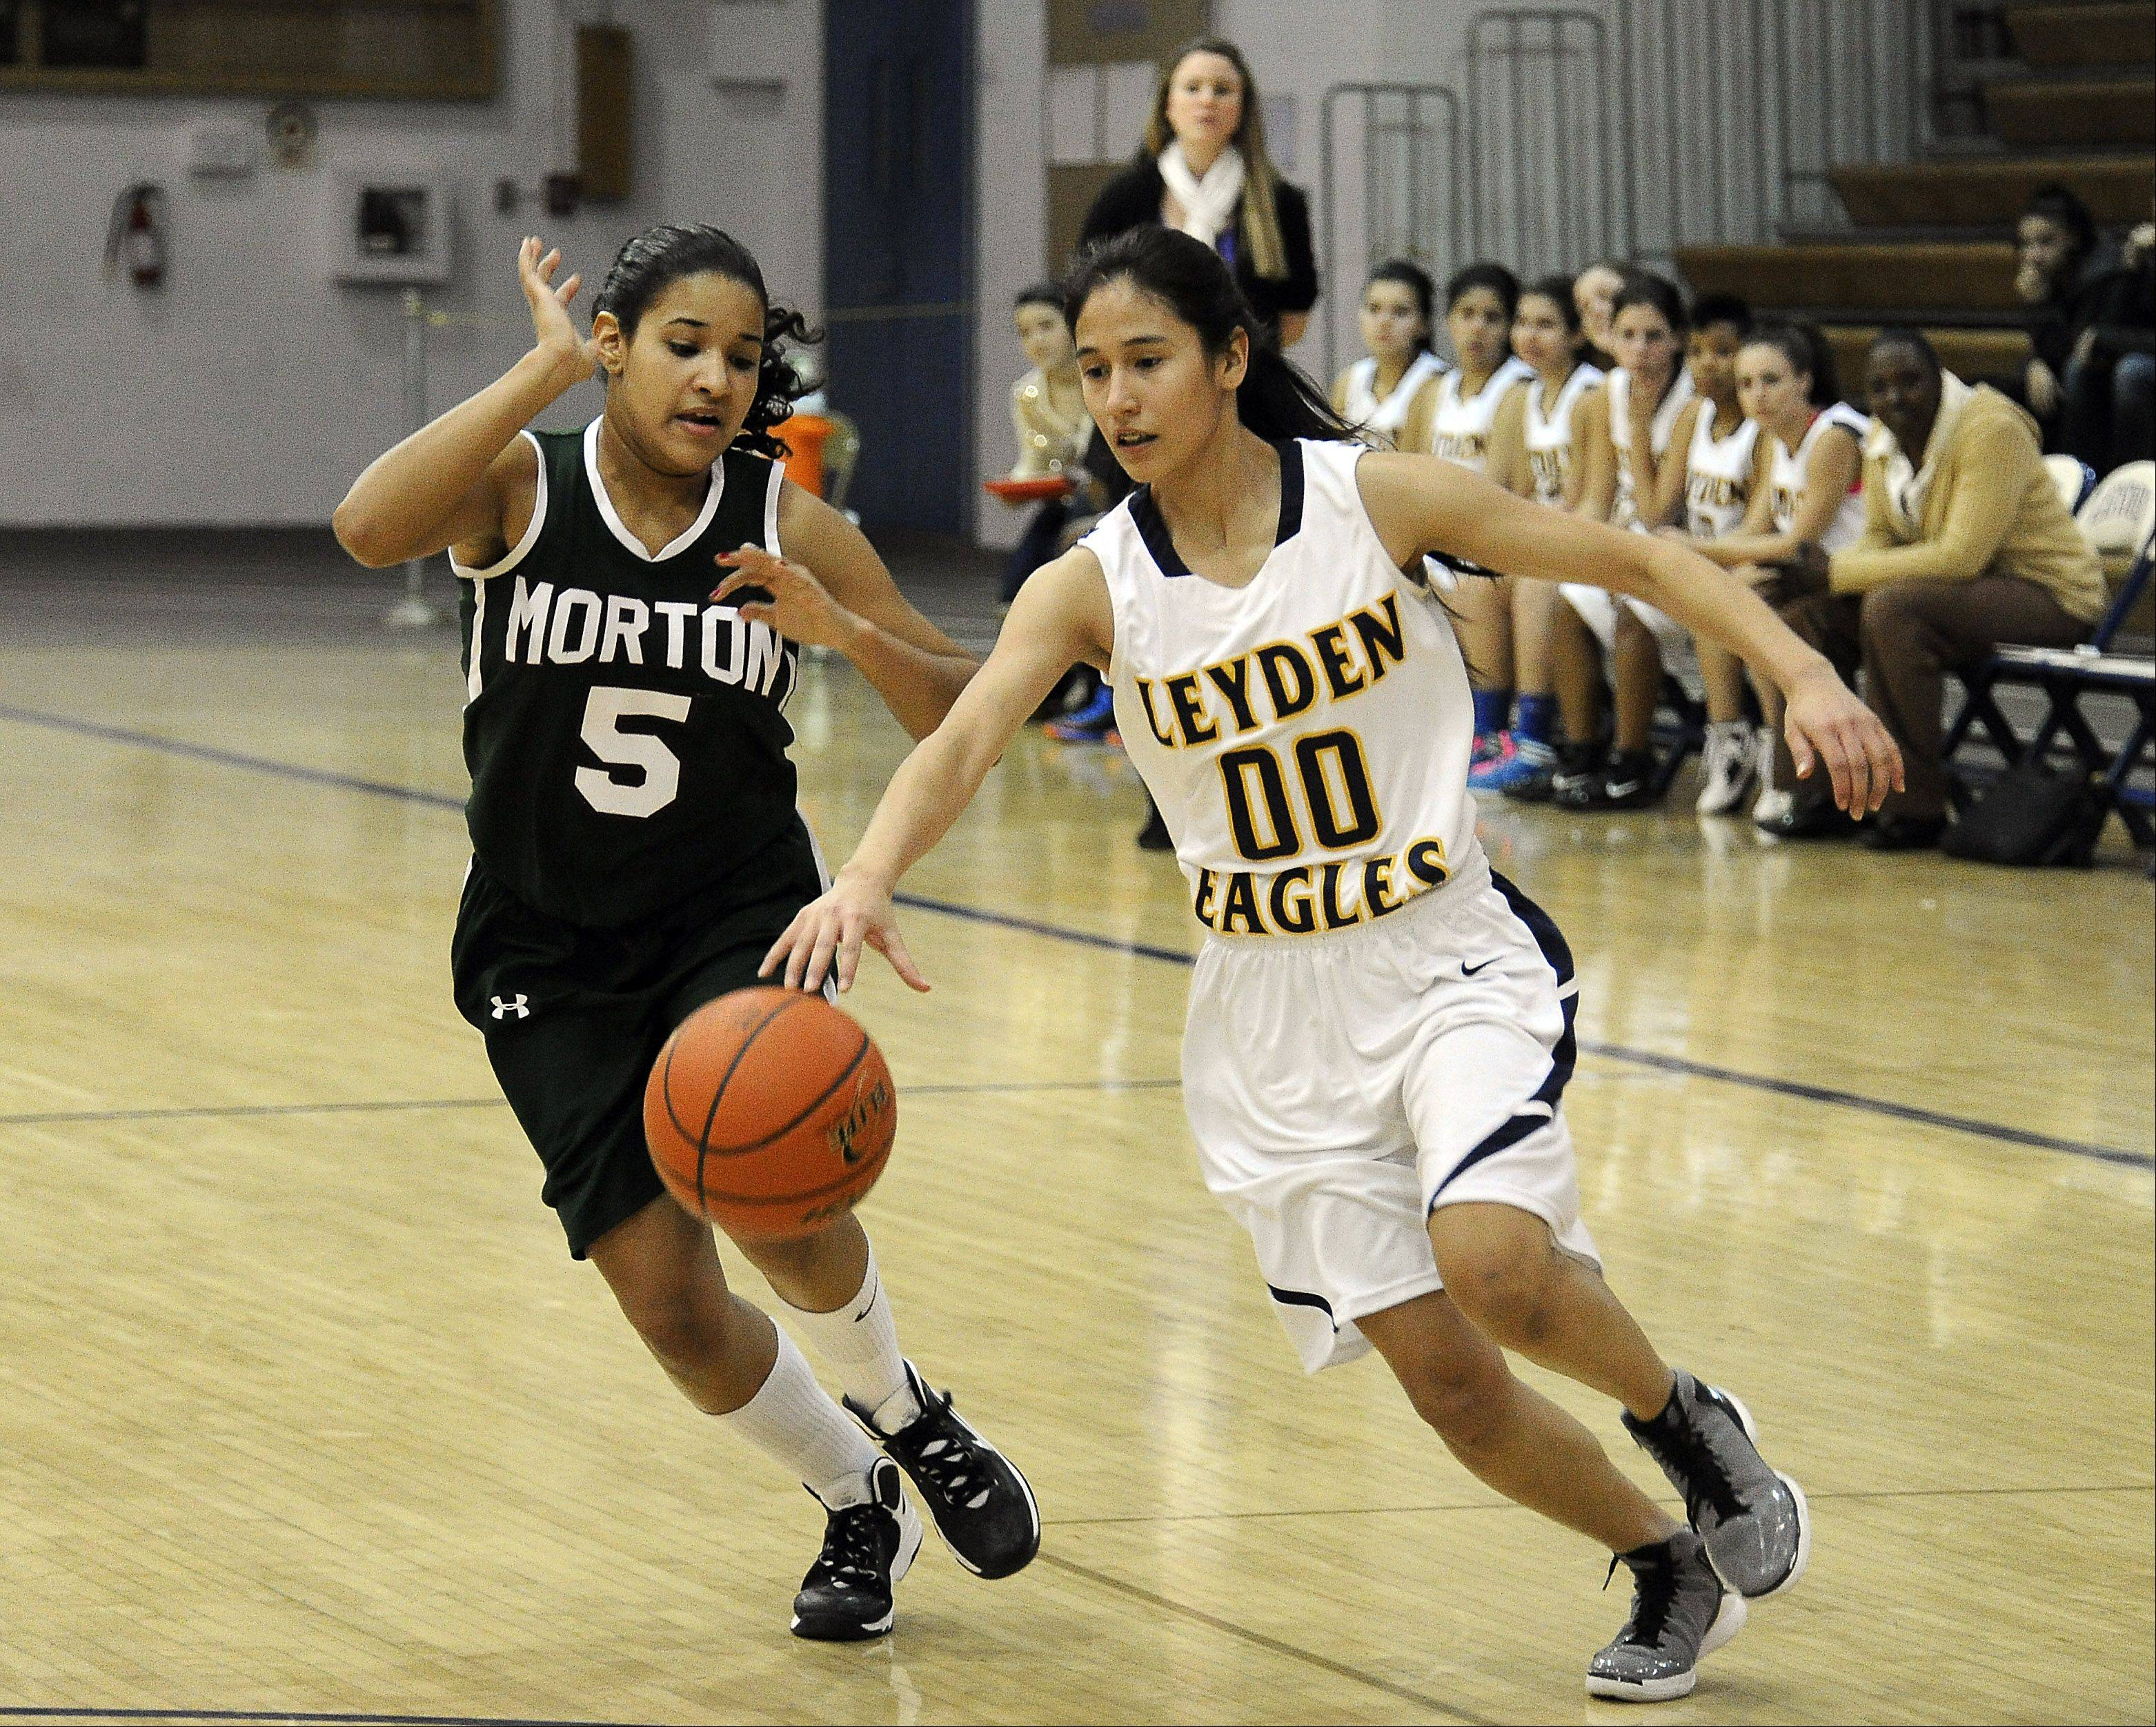 Leyden's Alondra Chavarria moves the ball.